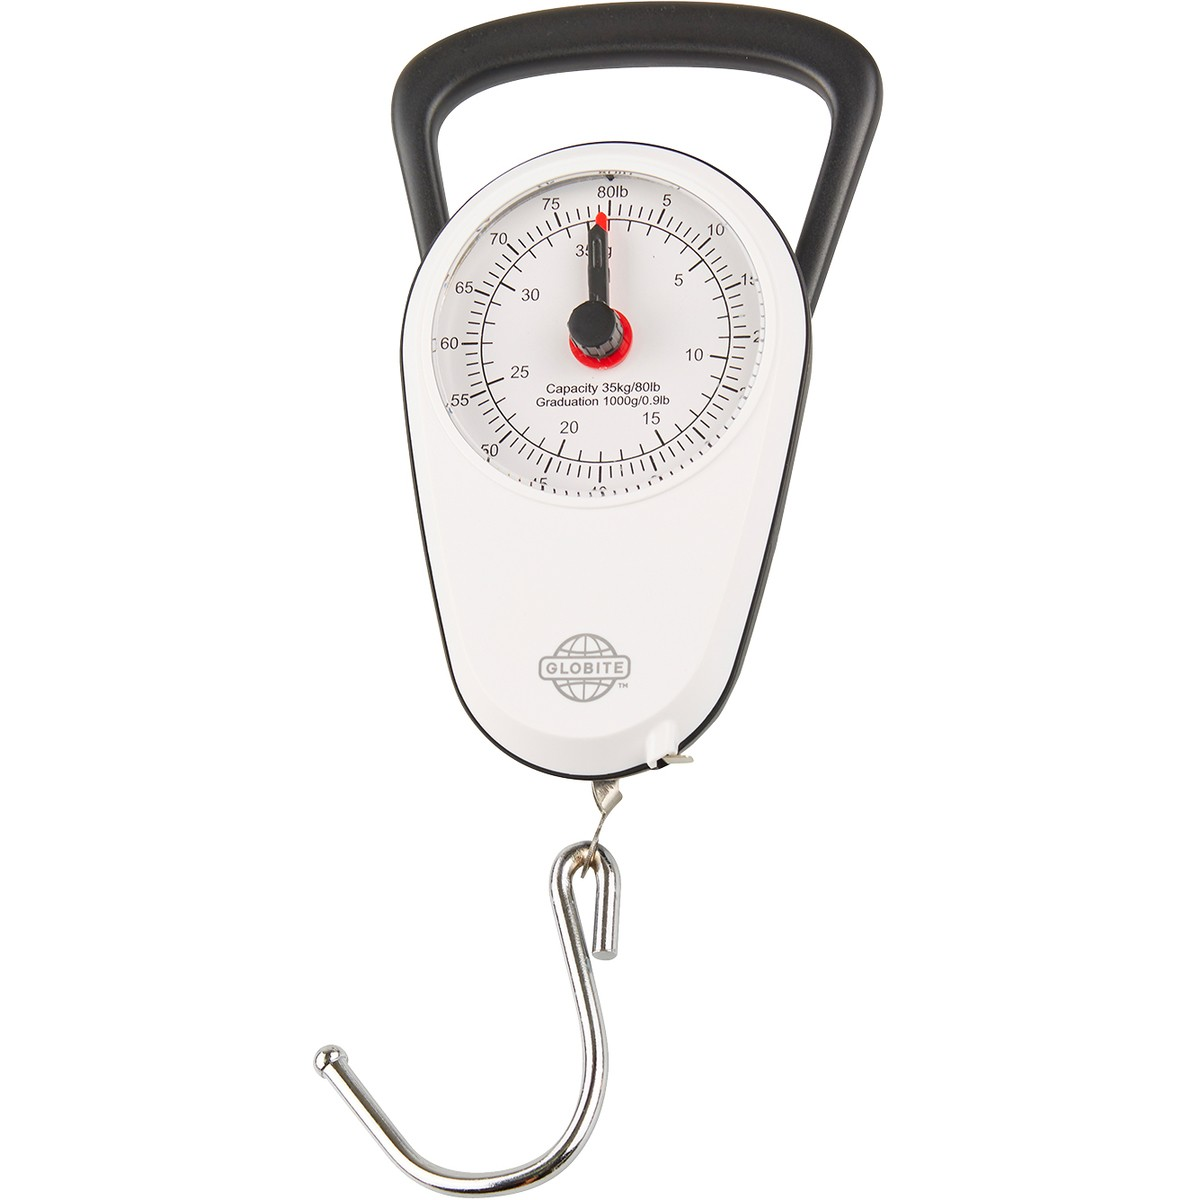 Luggage Scale Big W Globite Luggage Weighing Scales Big W